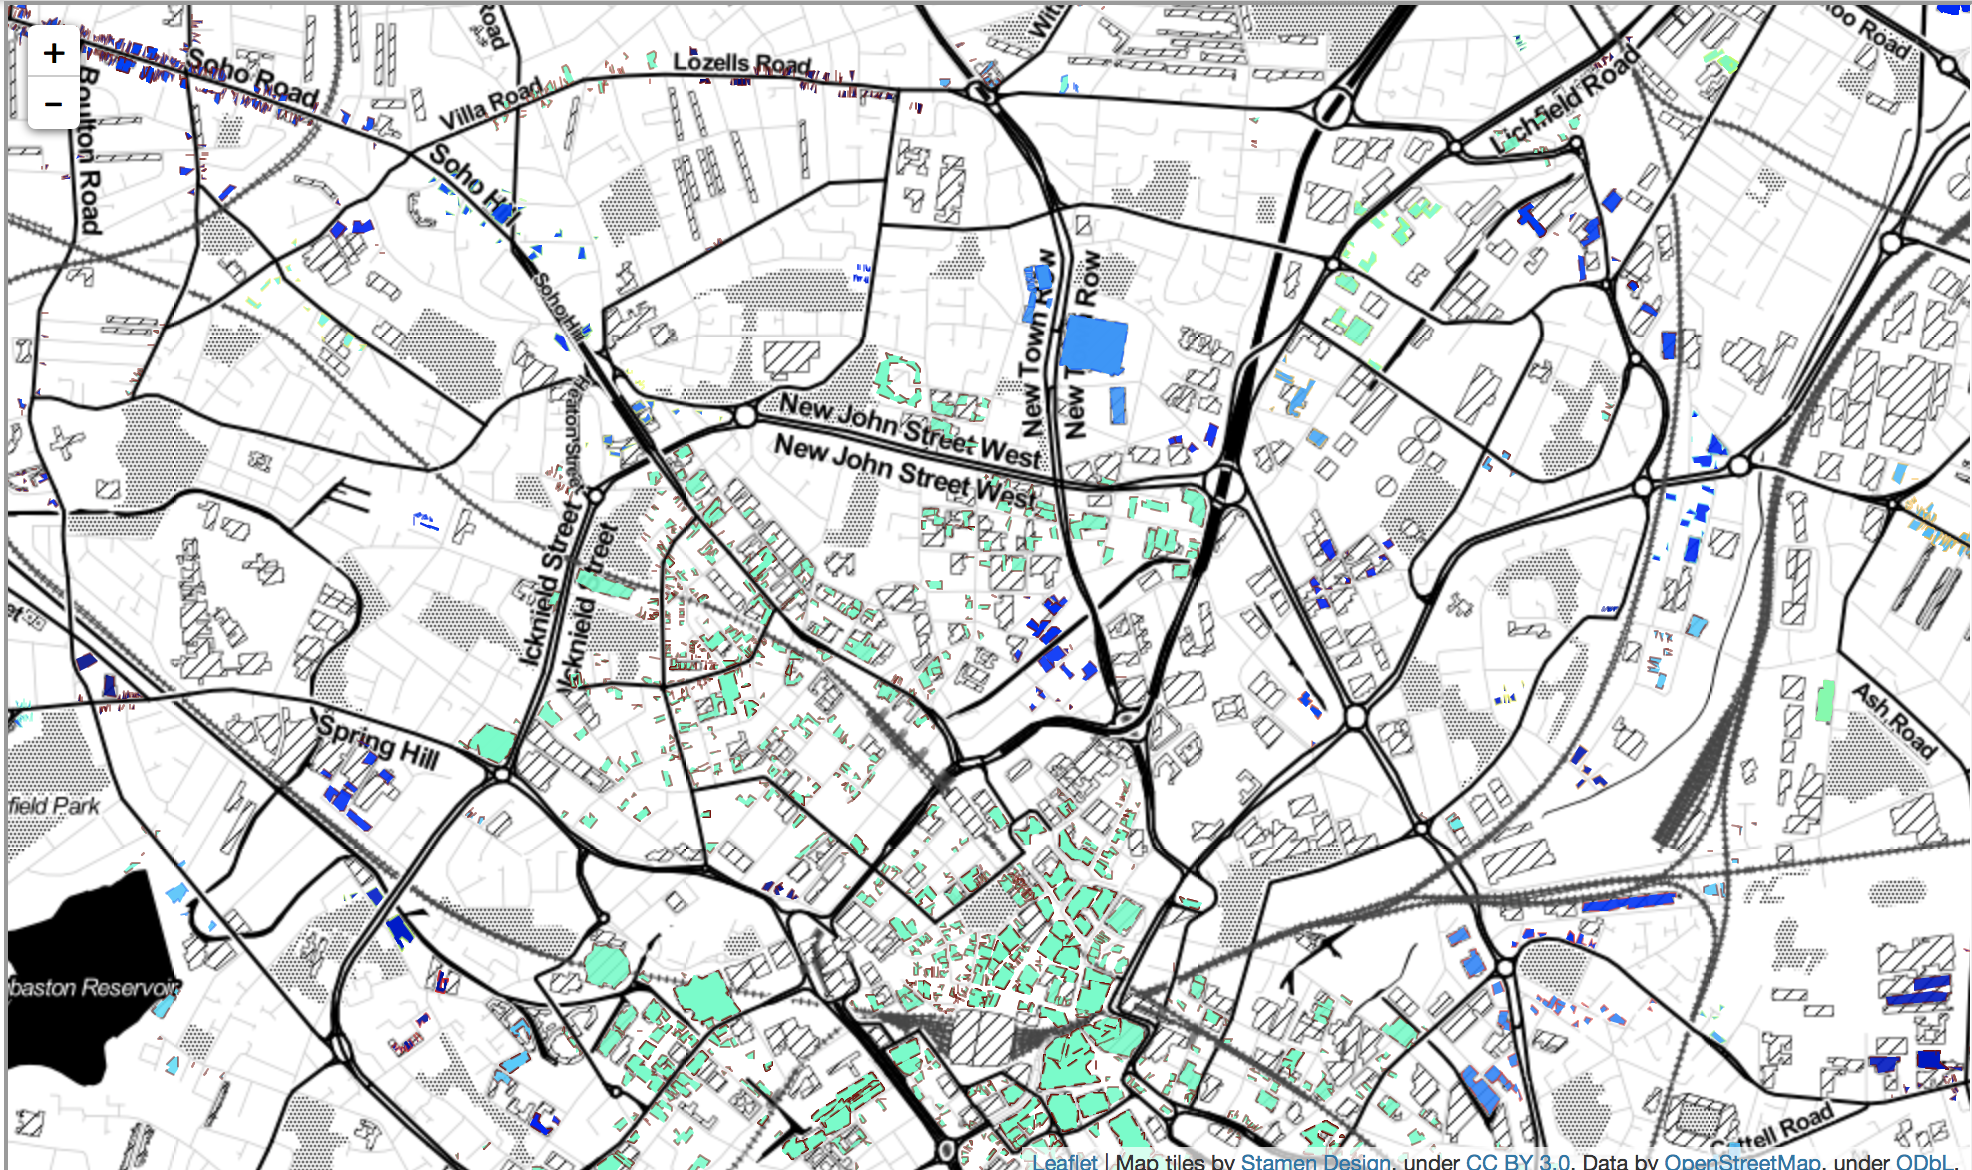 Map representation showing retail clusters for Basingstoke and Dean showing the difference between the urban city districts and the more rural and urban districts. Described under the heading Company location within retail clusters.